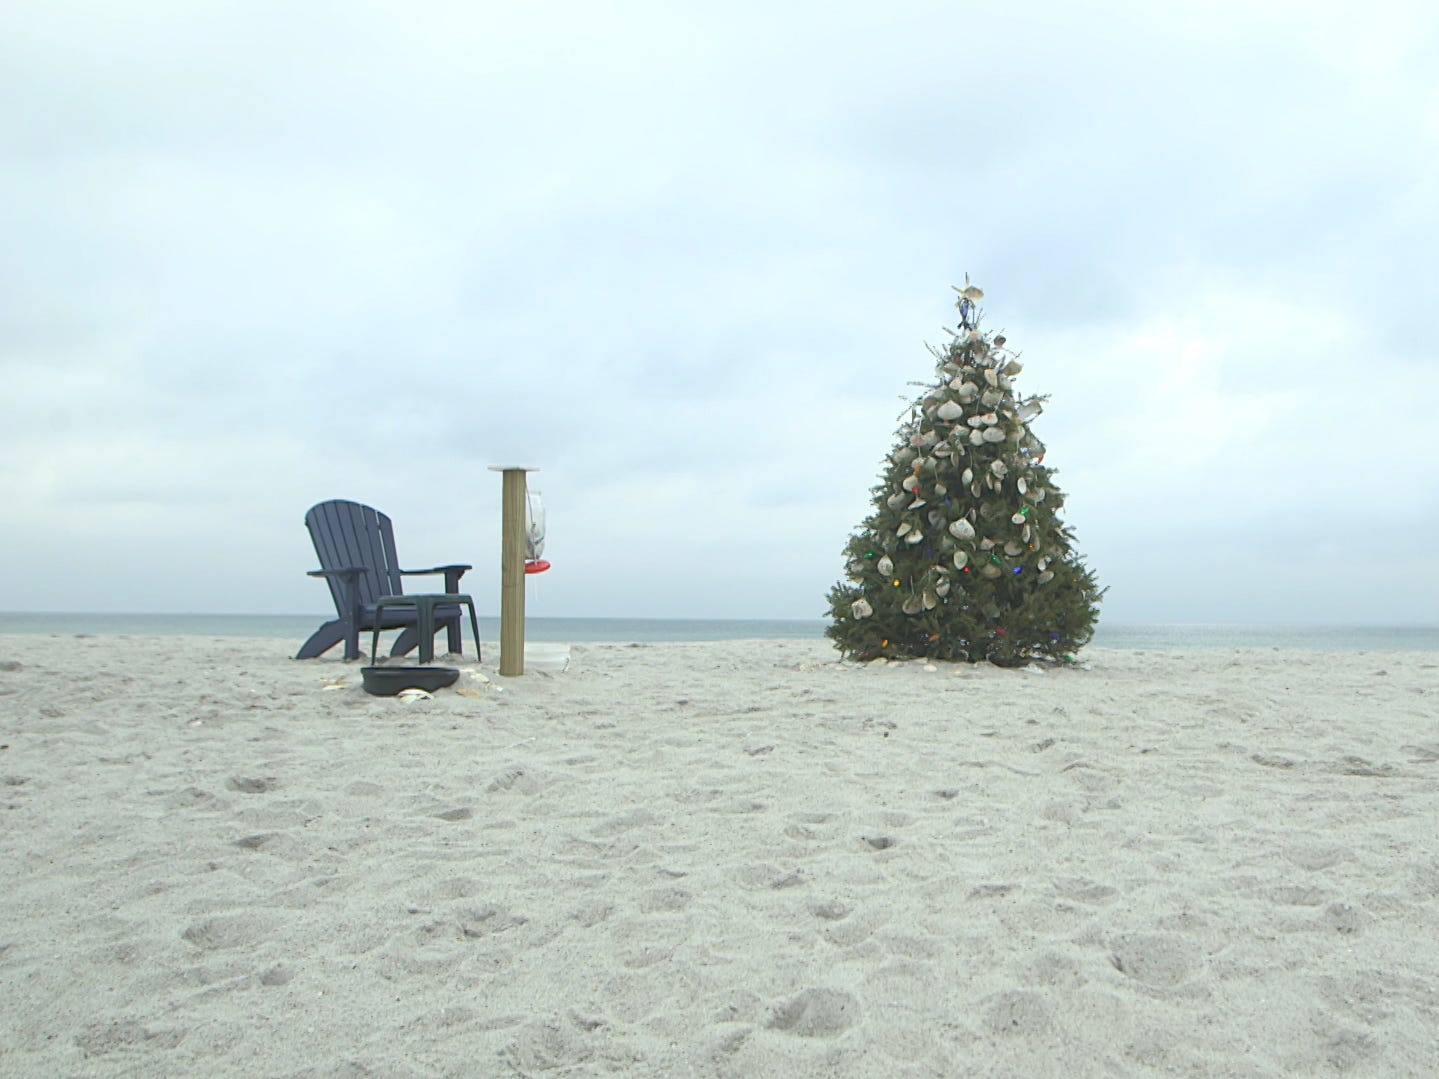 The Normandy Beach Chritmas tree has been set-up by locals since 2012